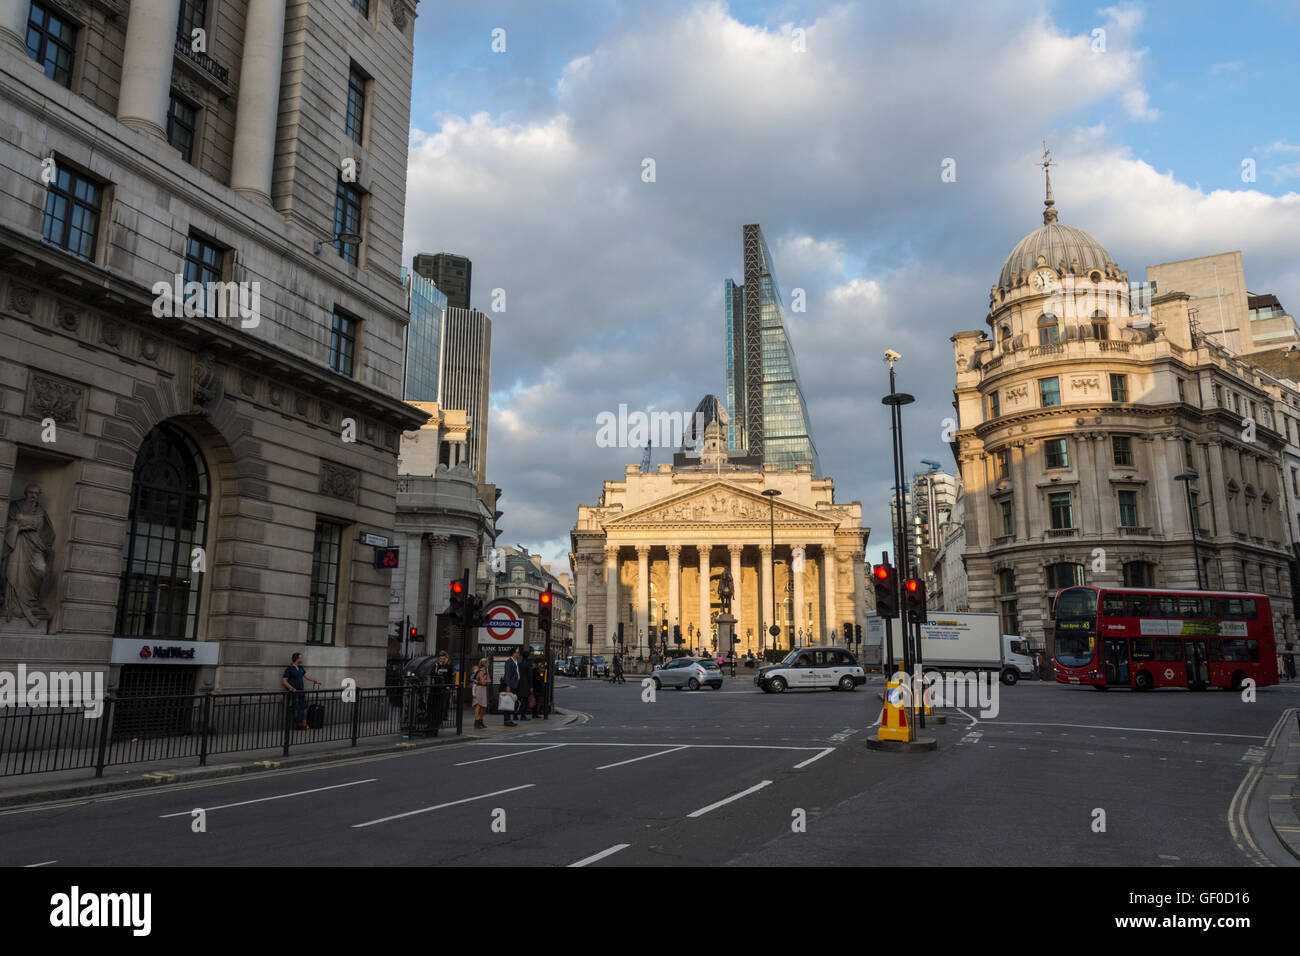 The Royal Exchange London England with surrounding streets - Stock Image